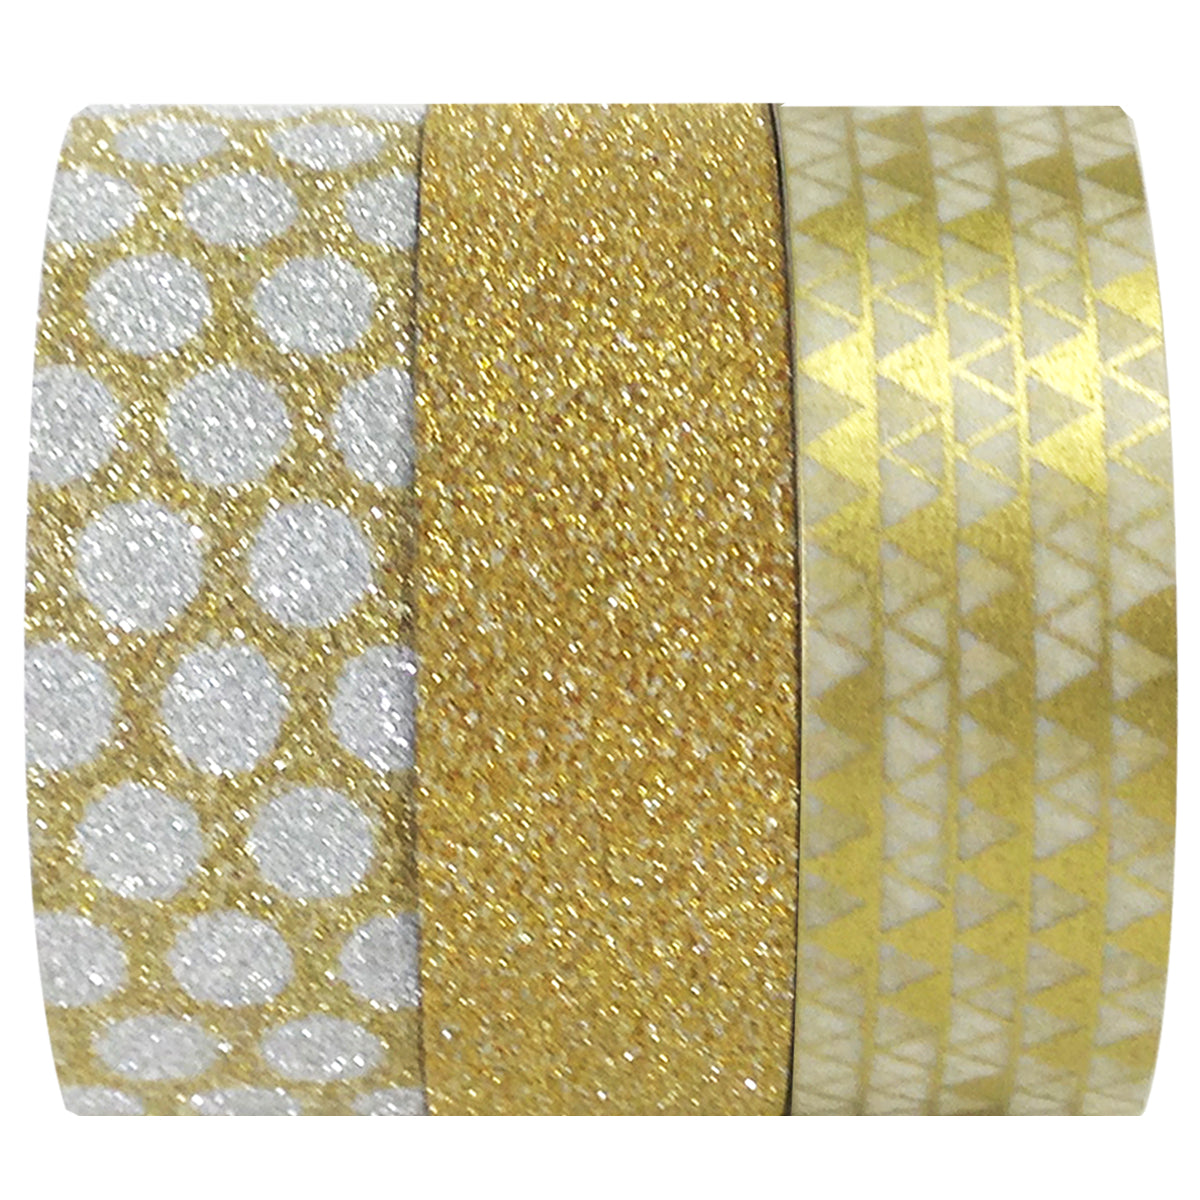 Wrapables Gold Treasure Japanese Washi Masking Tape (Set of 3)